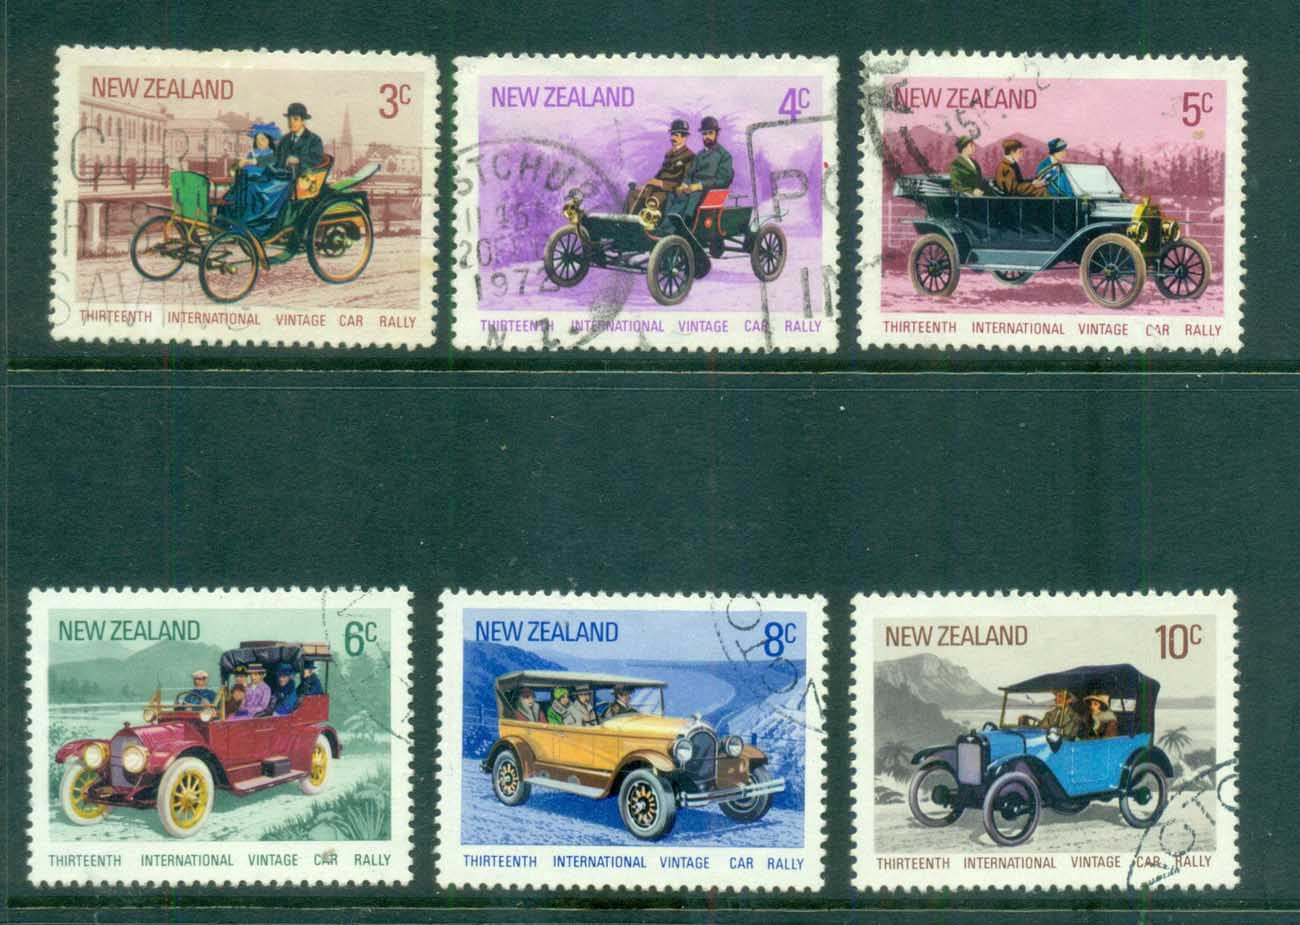 New Zealand 1972 Vintage cars FU lot71723